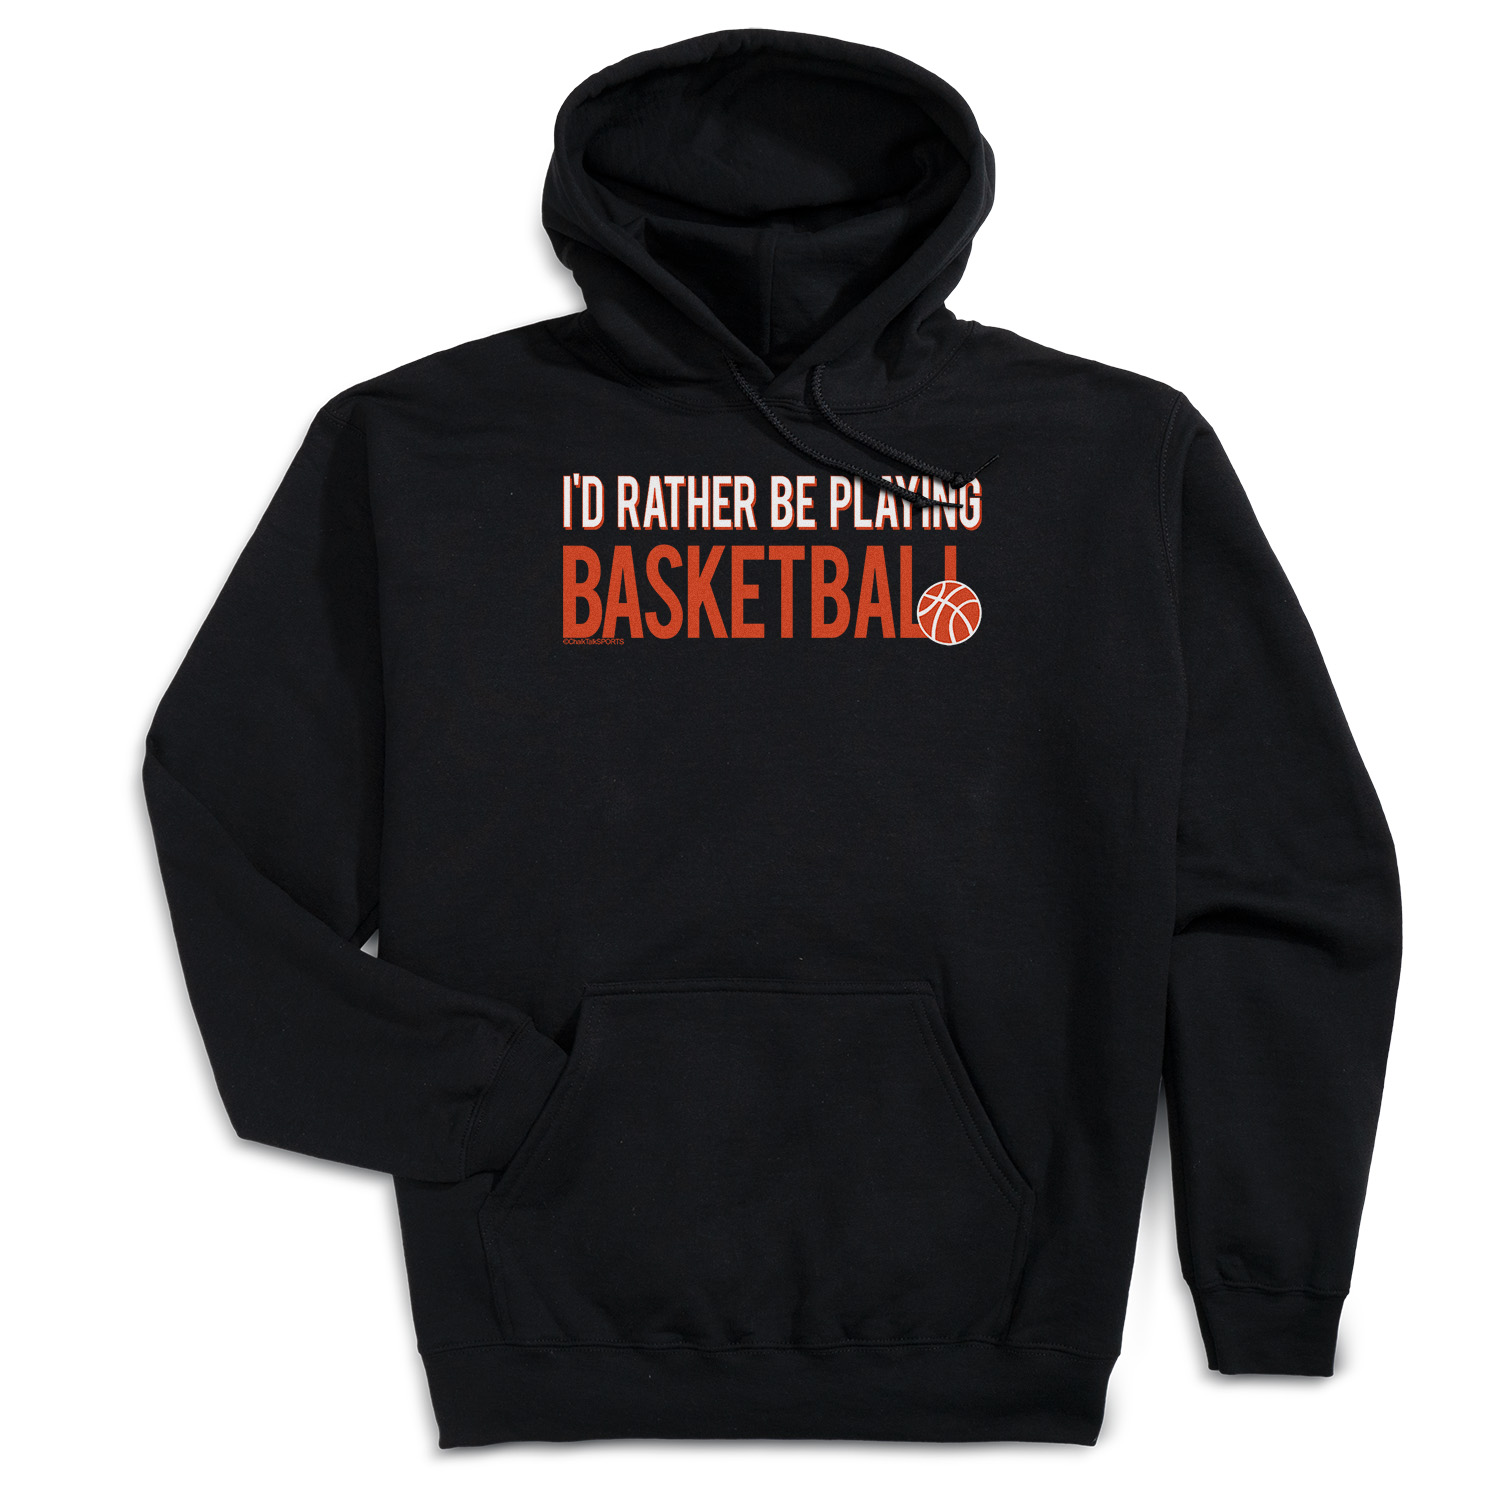 Basketball Hooded Sweatshirt - I'd Rather Be Playing Basketball